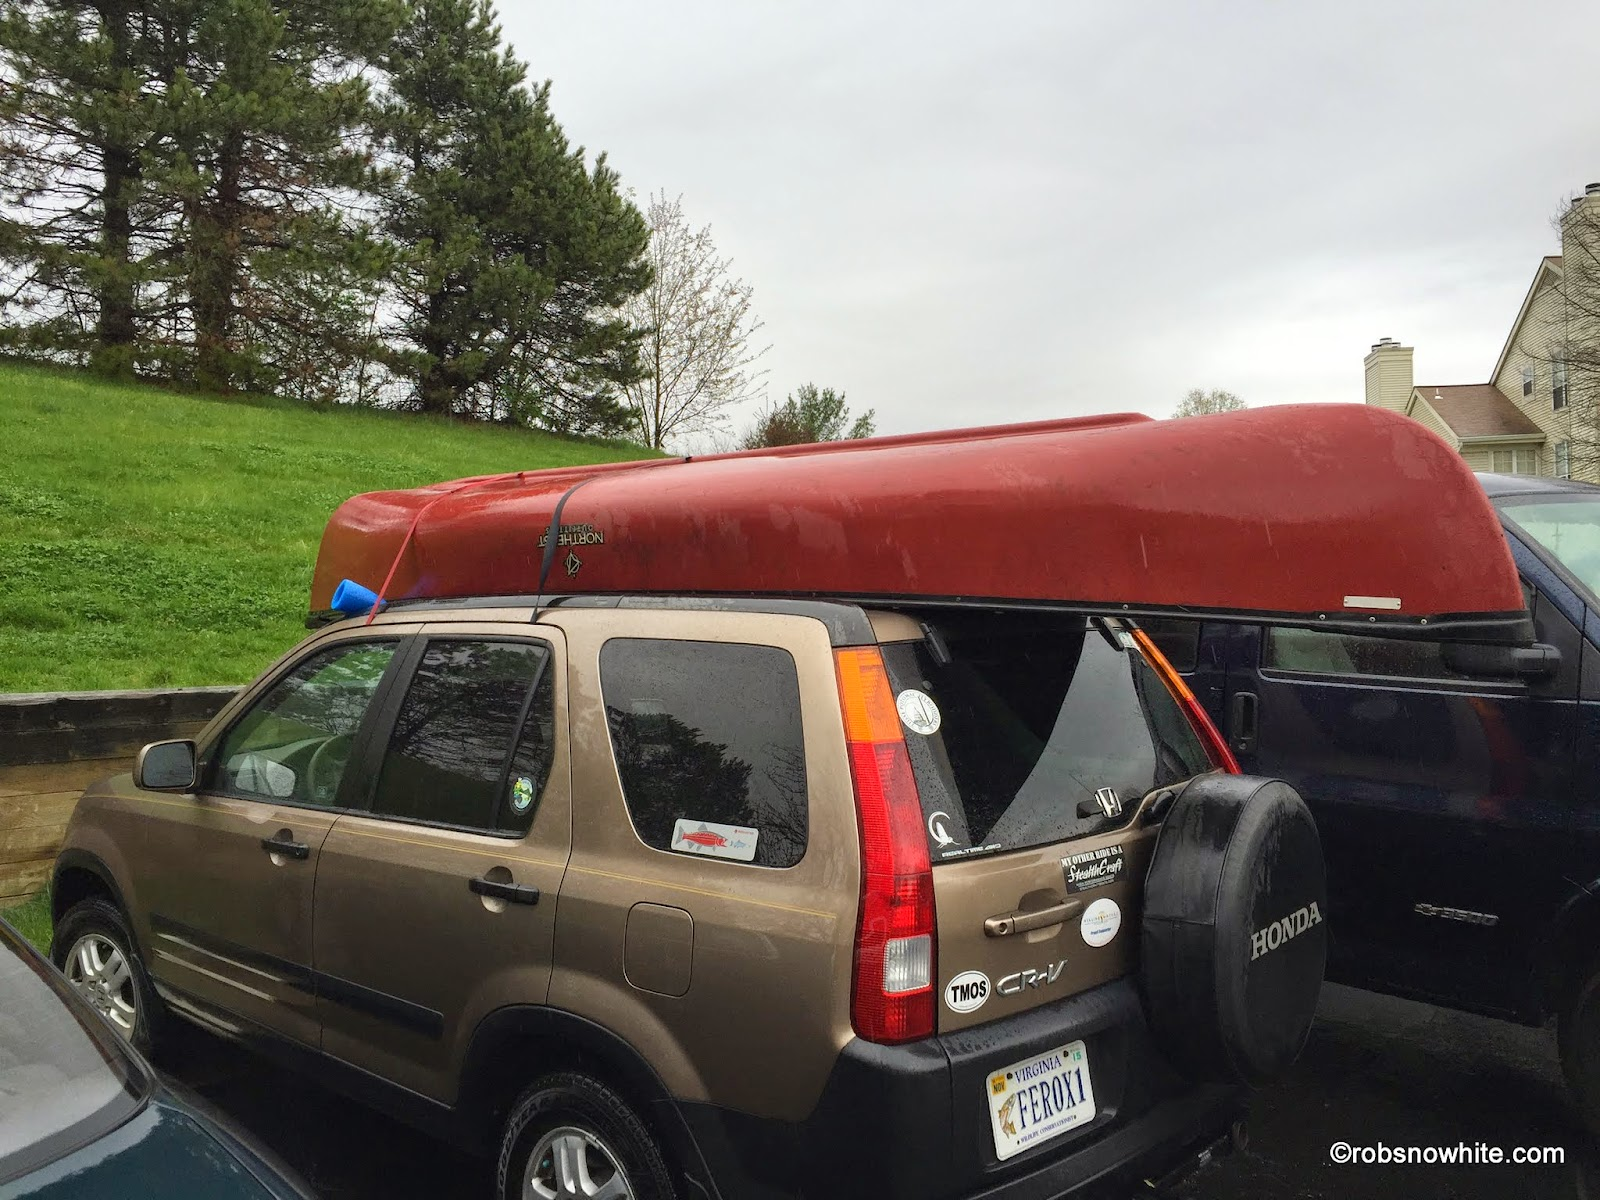 So I Have This Beater Canoe. I Want To Have It On Hand To Guide For  Snakehads This Summer In Some Hard To Reach Spots.